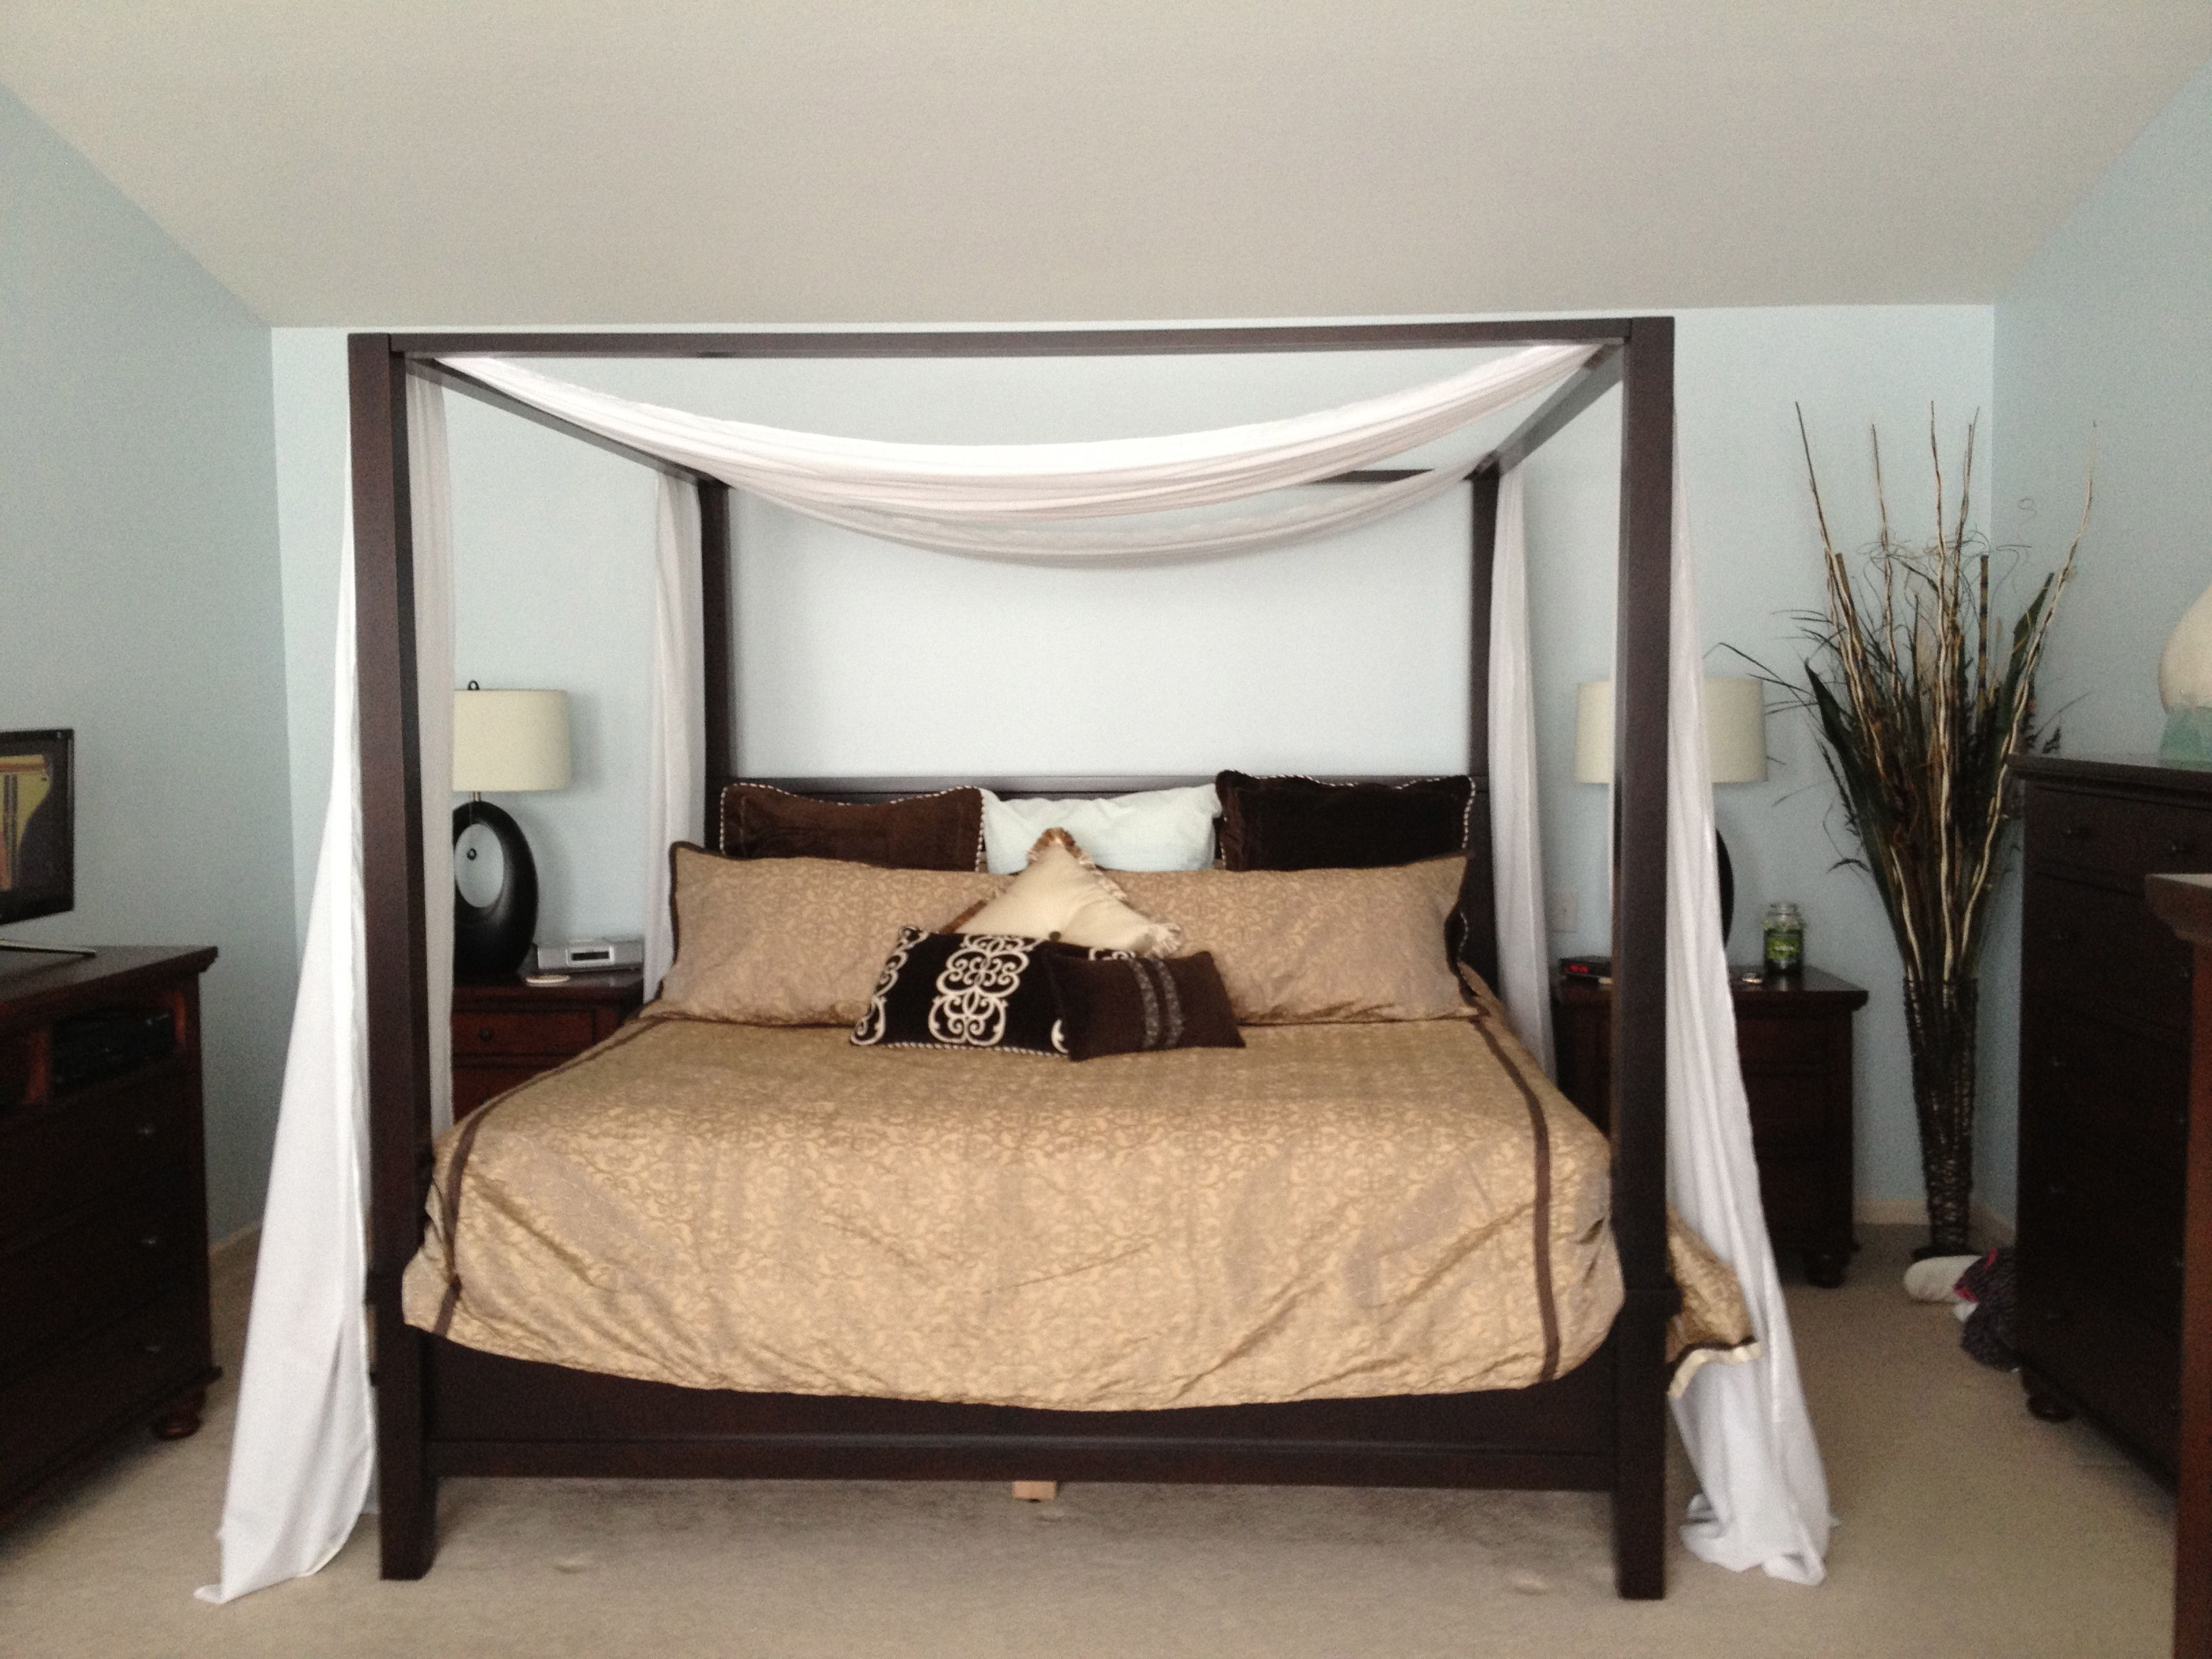 Farmhouse King Canapy Bed by Pottery Barn Dreams beds